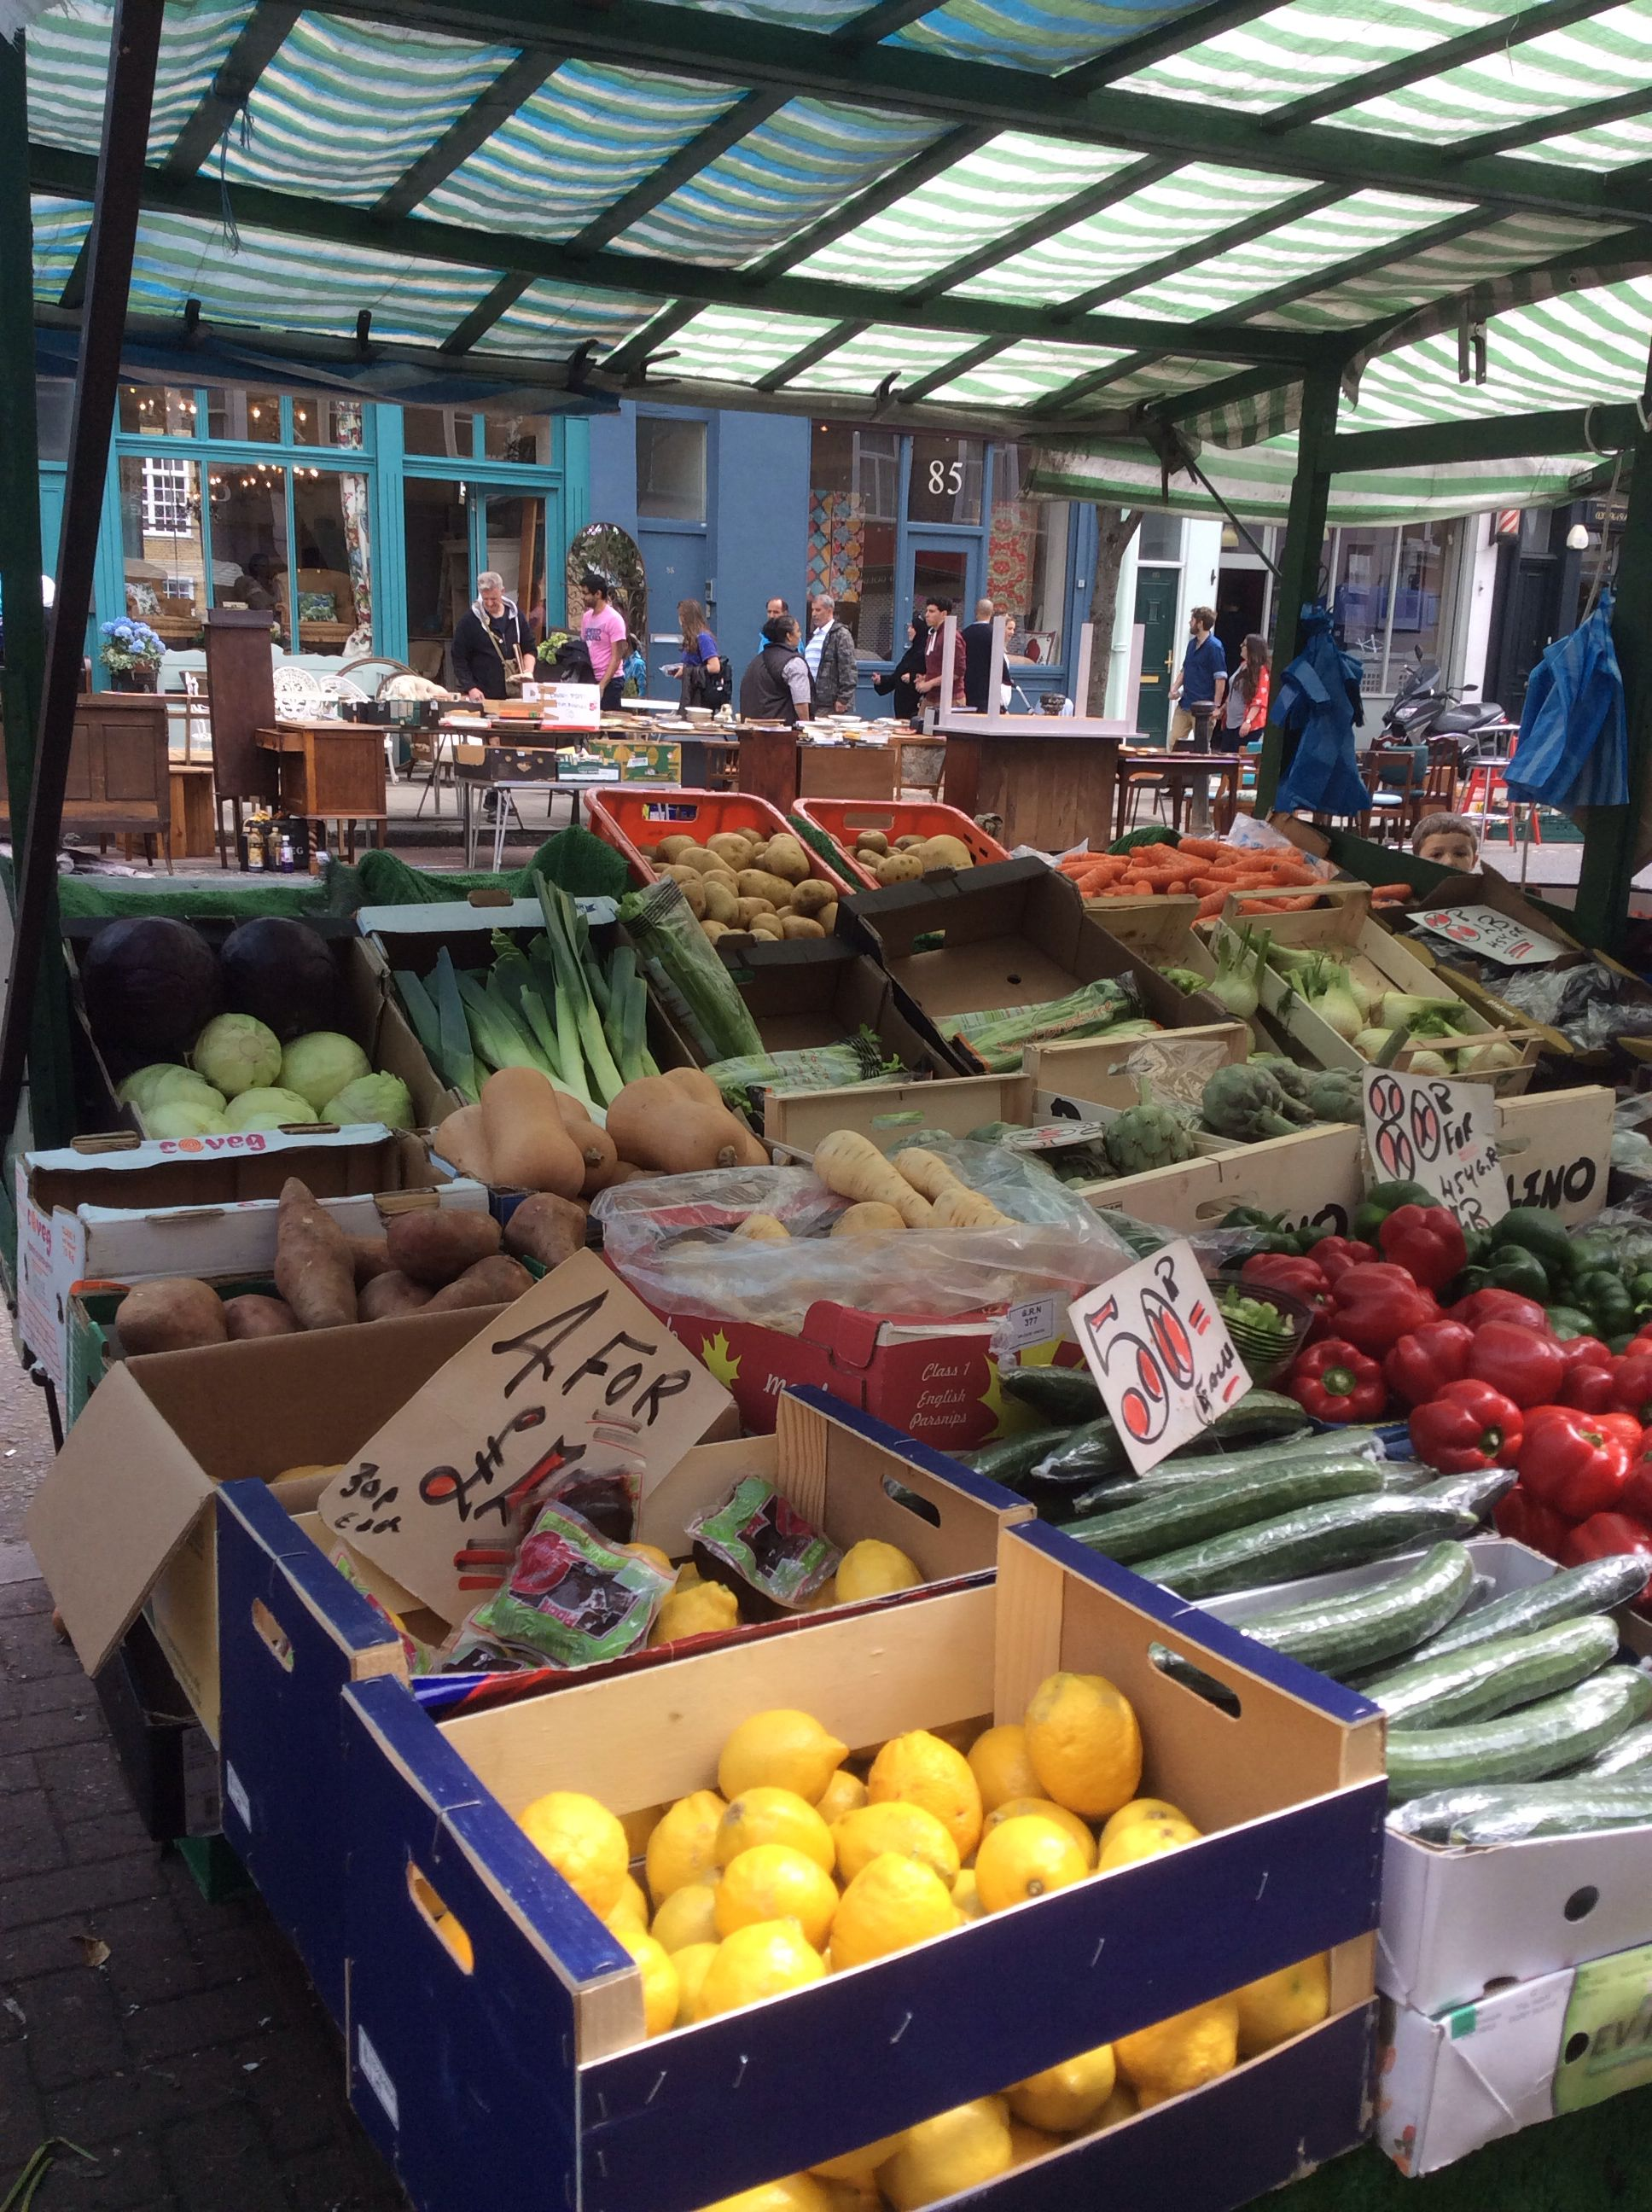 Friday and Saturday are market days on Goborne Road